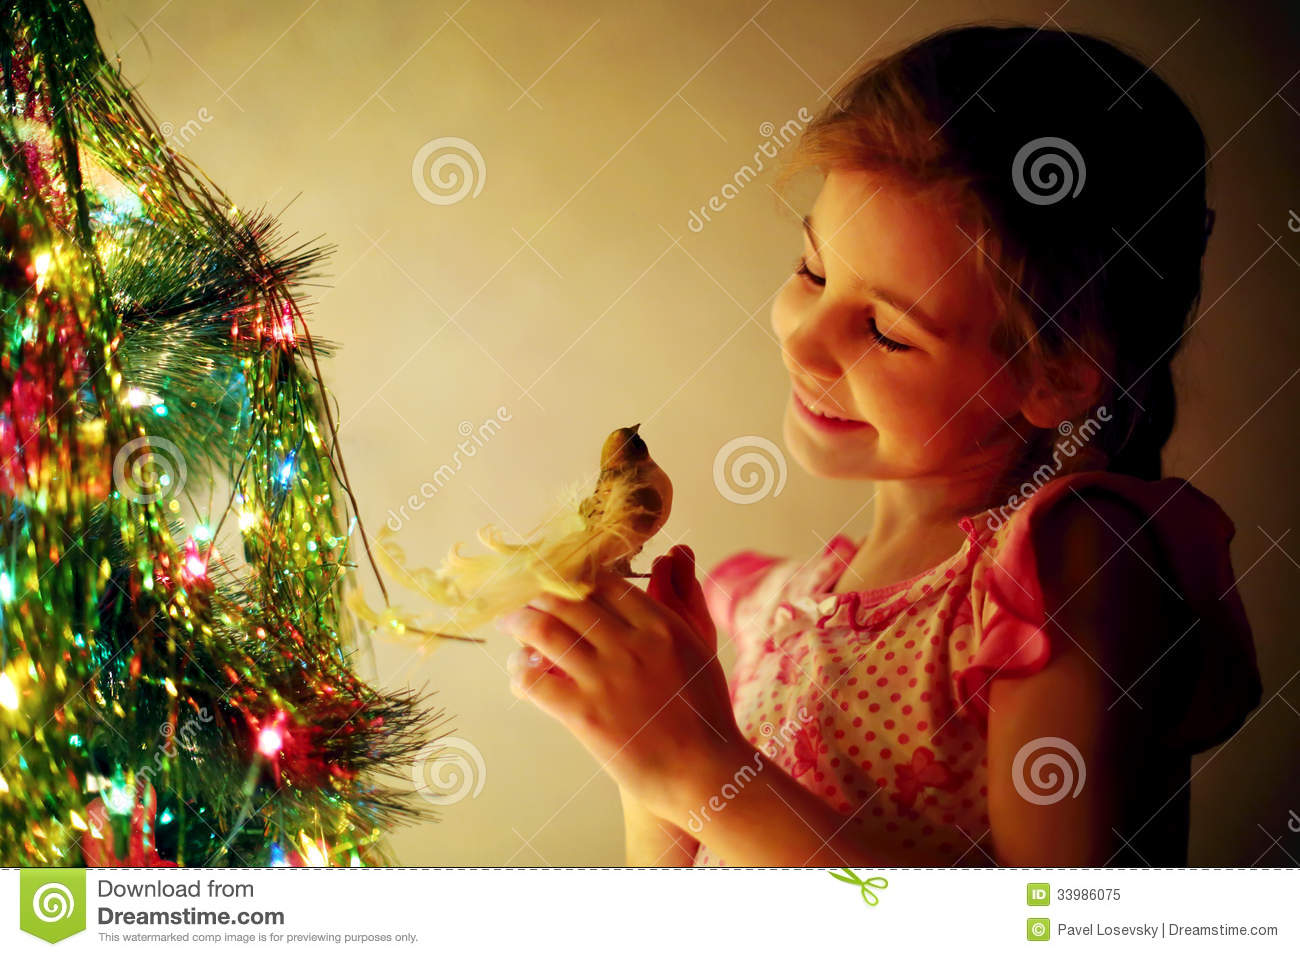 Smiling cute girl holds toy bird next to Christmas tree